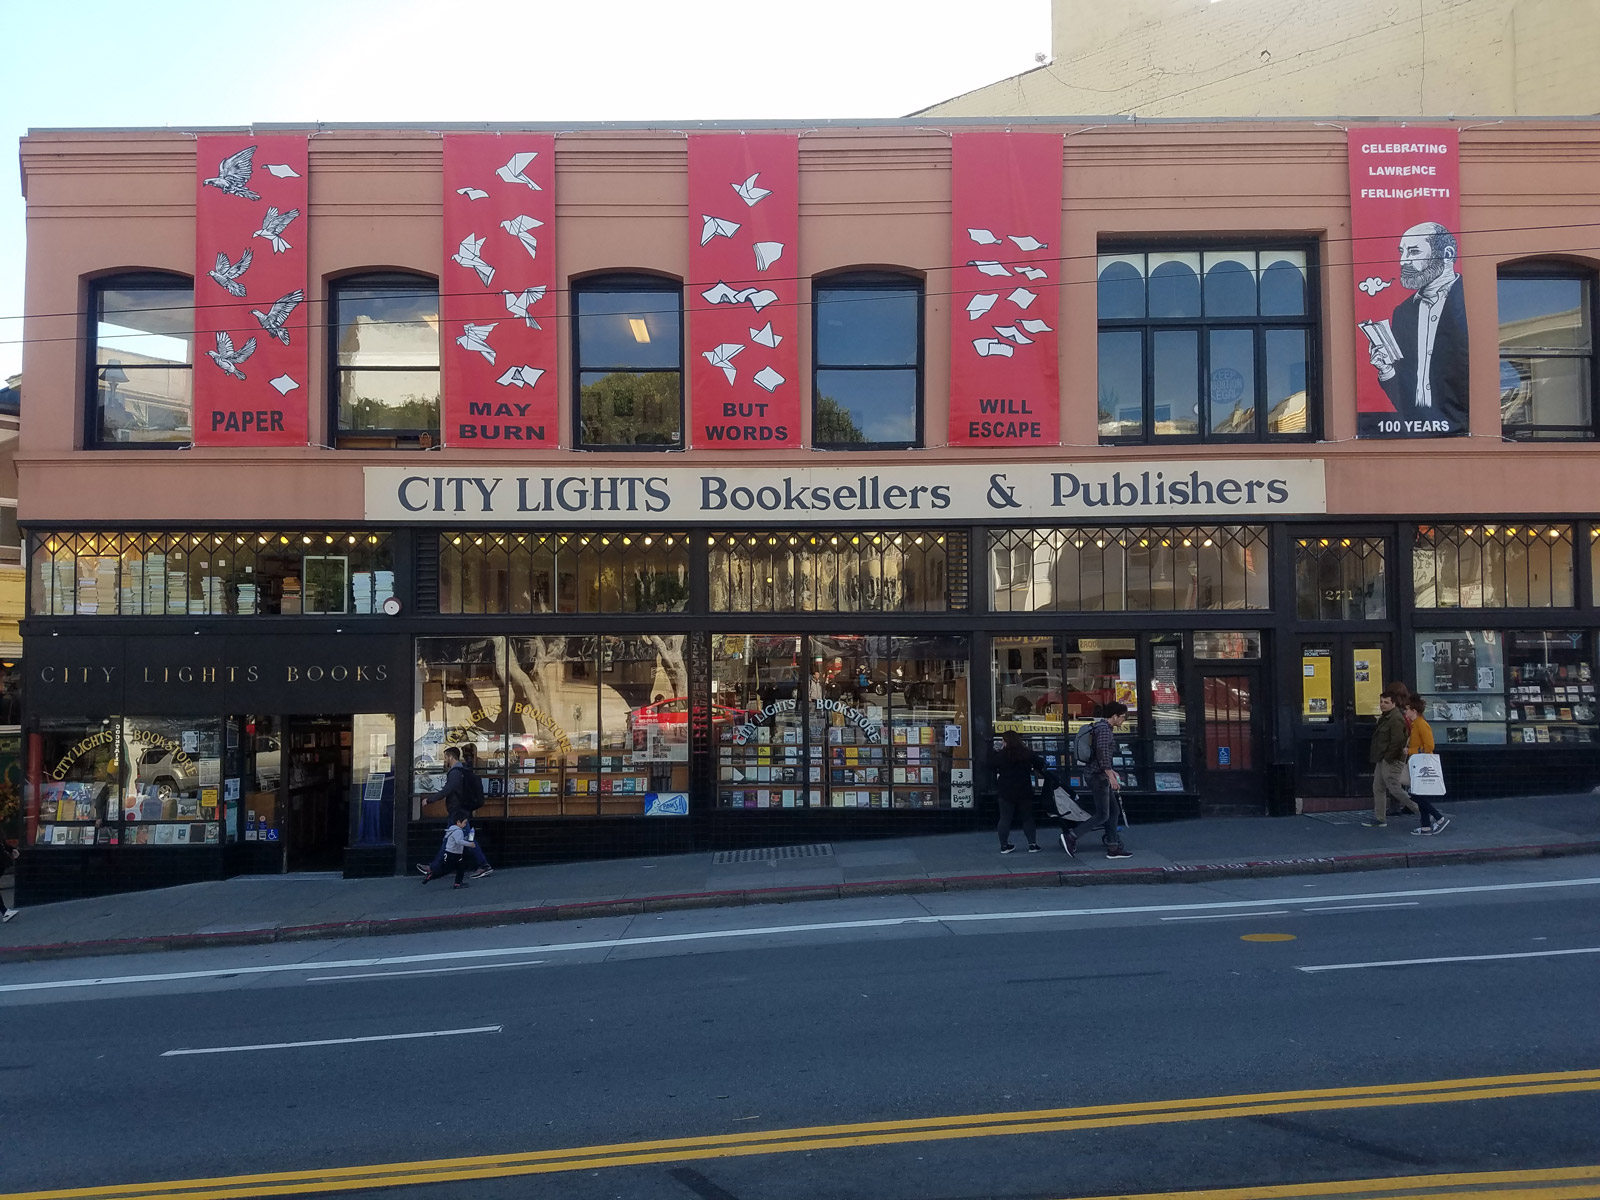 People walk by the City Lights storefront that is decorated with banners for Ferlinghetti's centennial